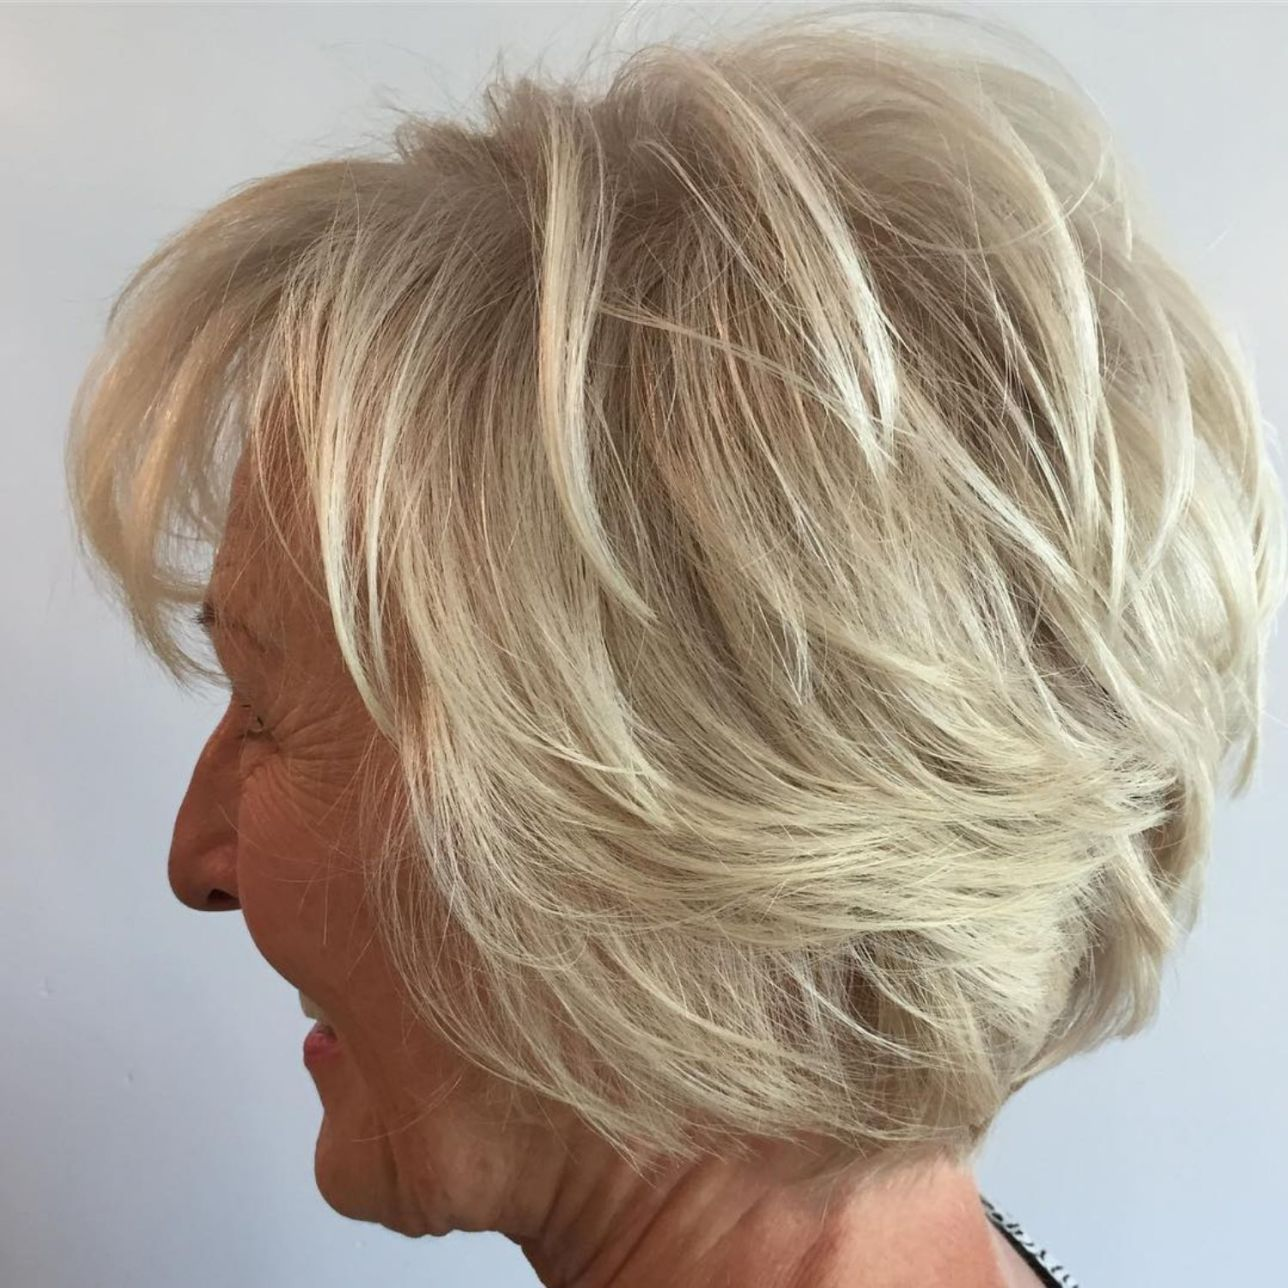 Over Short Hairstyle With Bangs In 2021 Short Hair With Layers Cool Hairstyles Thick Hair Styles